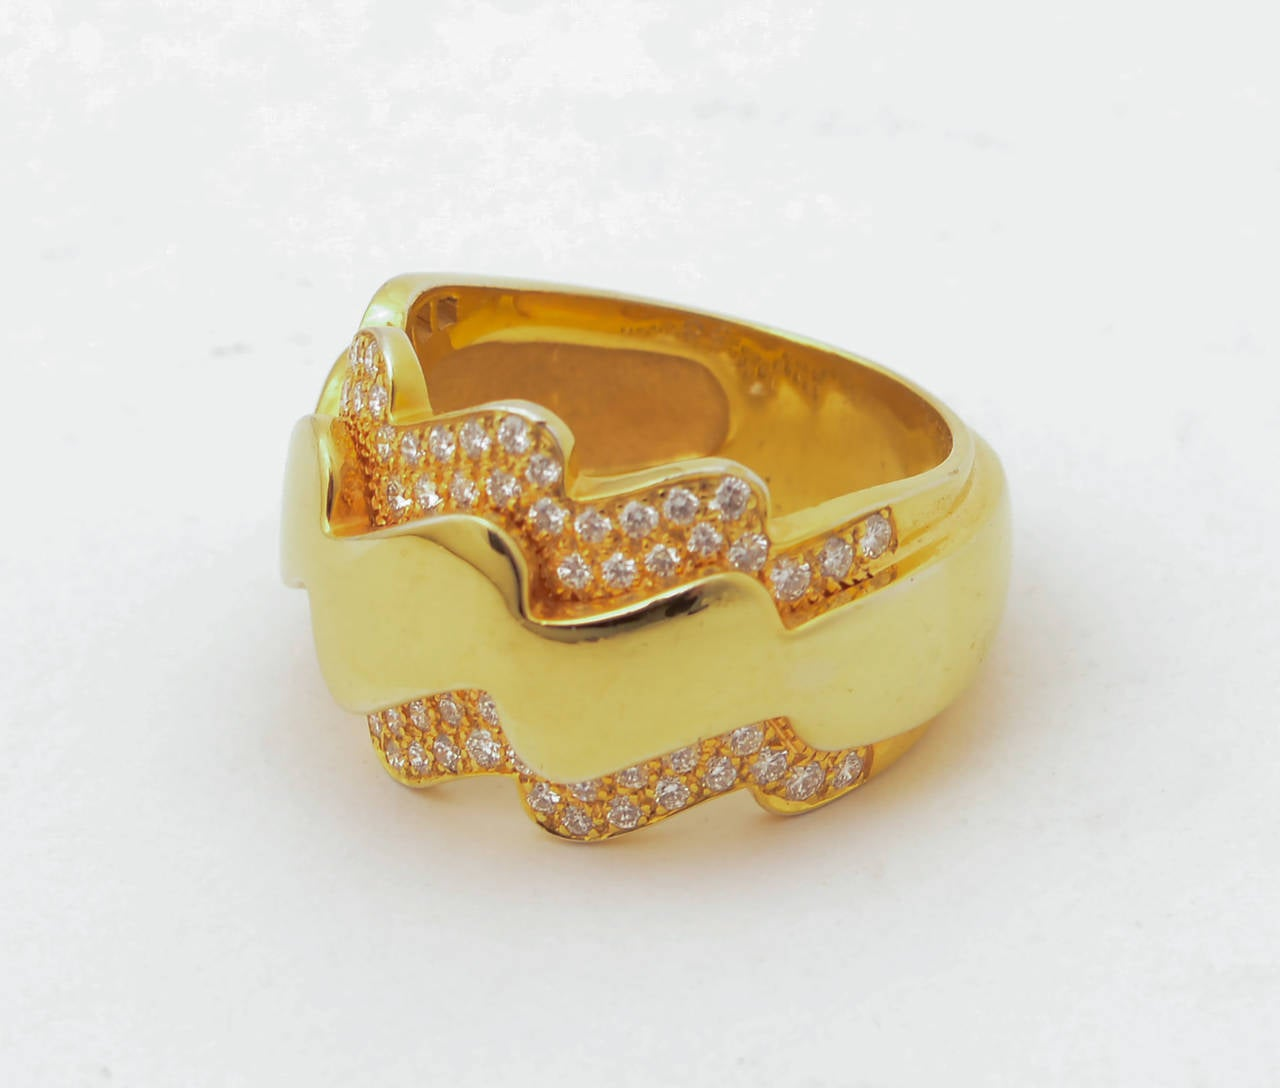 Van Cleef & Arpels zig zag band ring that matches earrings item  LU133338302. Made of 18 karat gold and diamonds. Ring is size 8 but can be sized. The front is 5/8